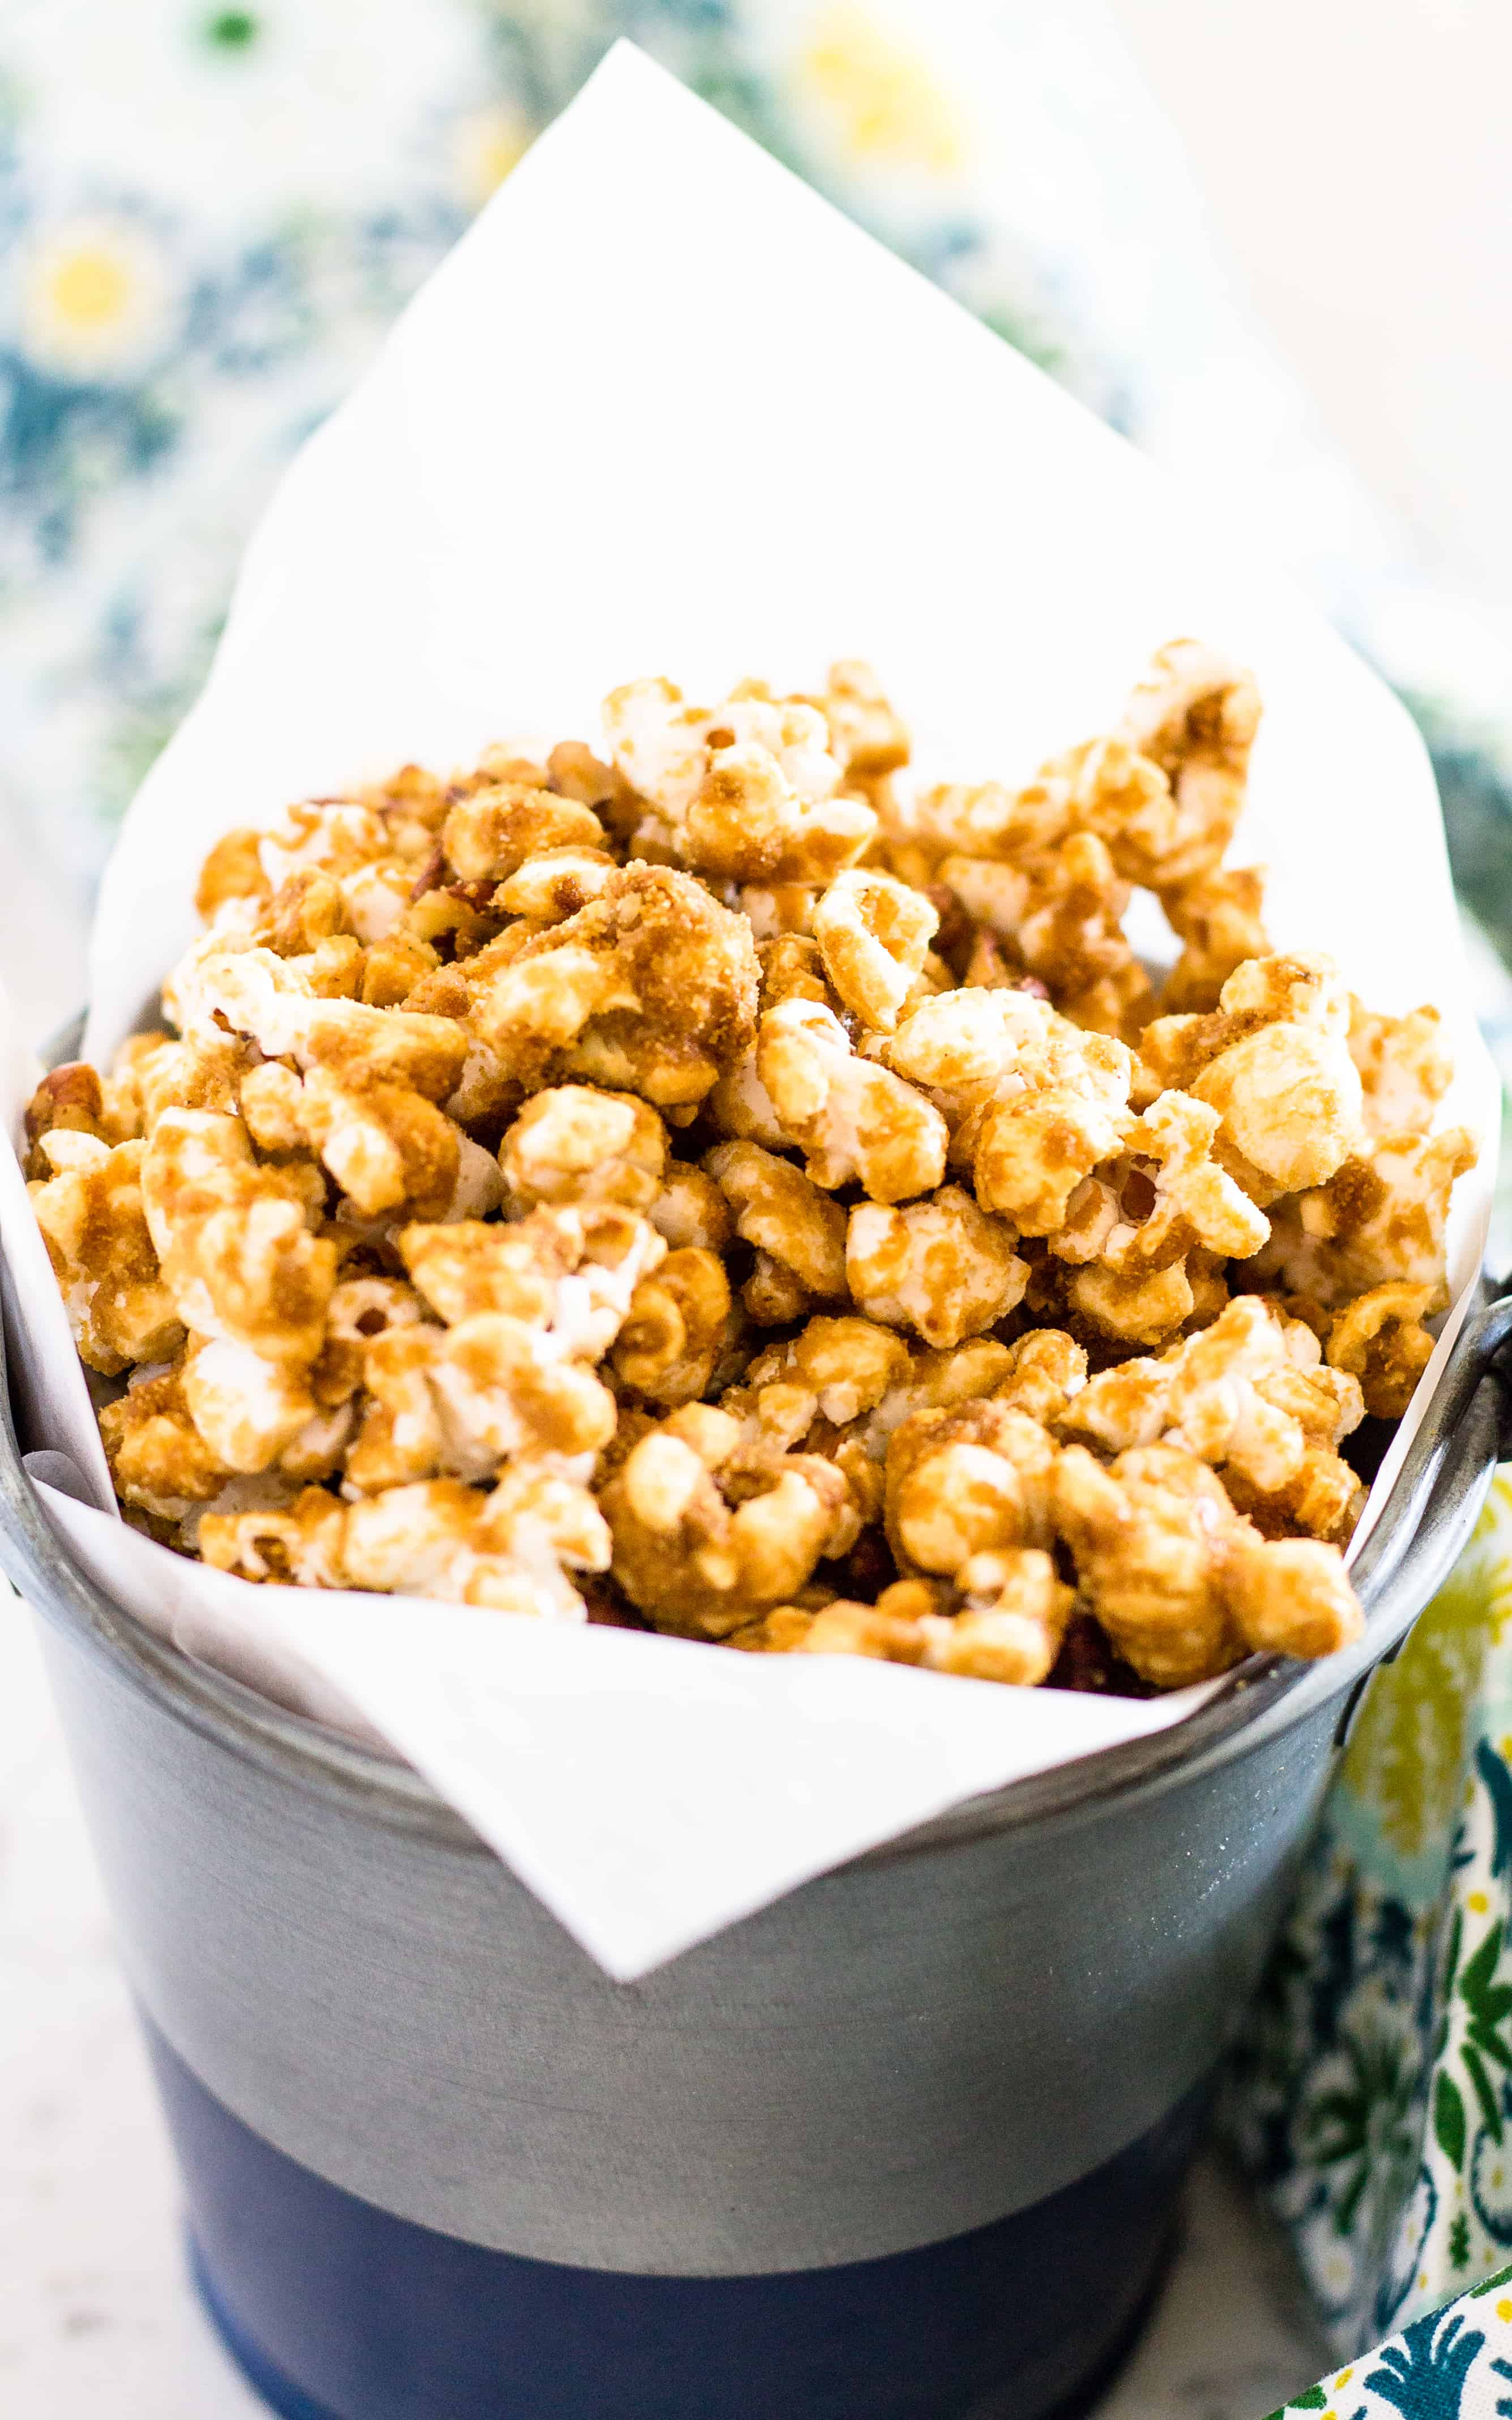 Grandma's Salted Caramel Corn - A Fun Snack for Kids and Adults